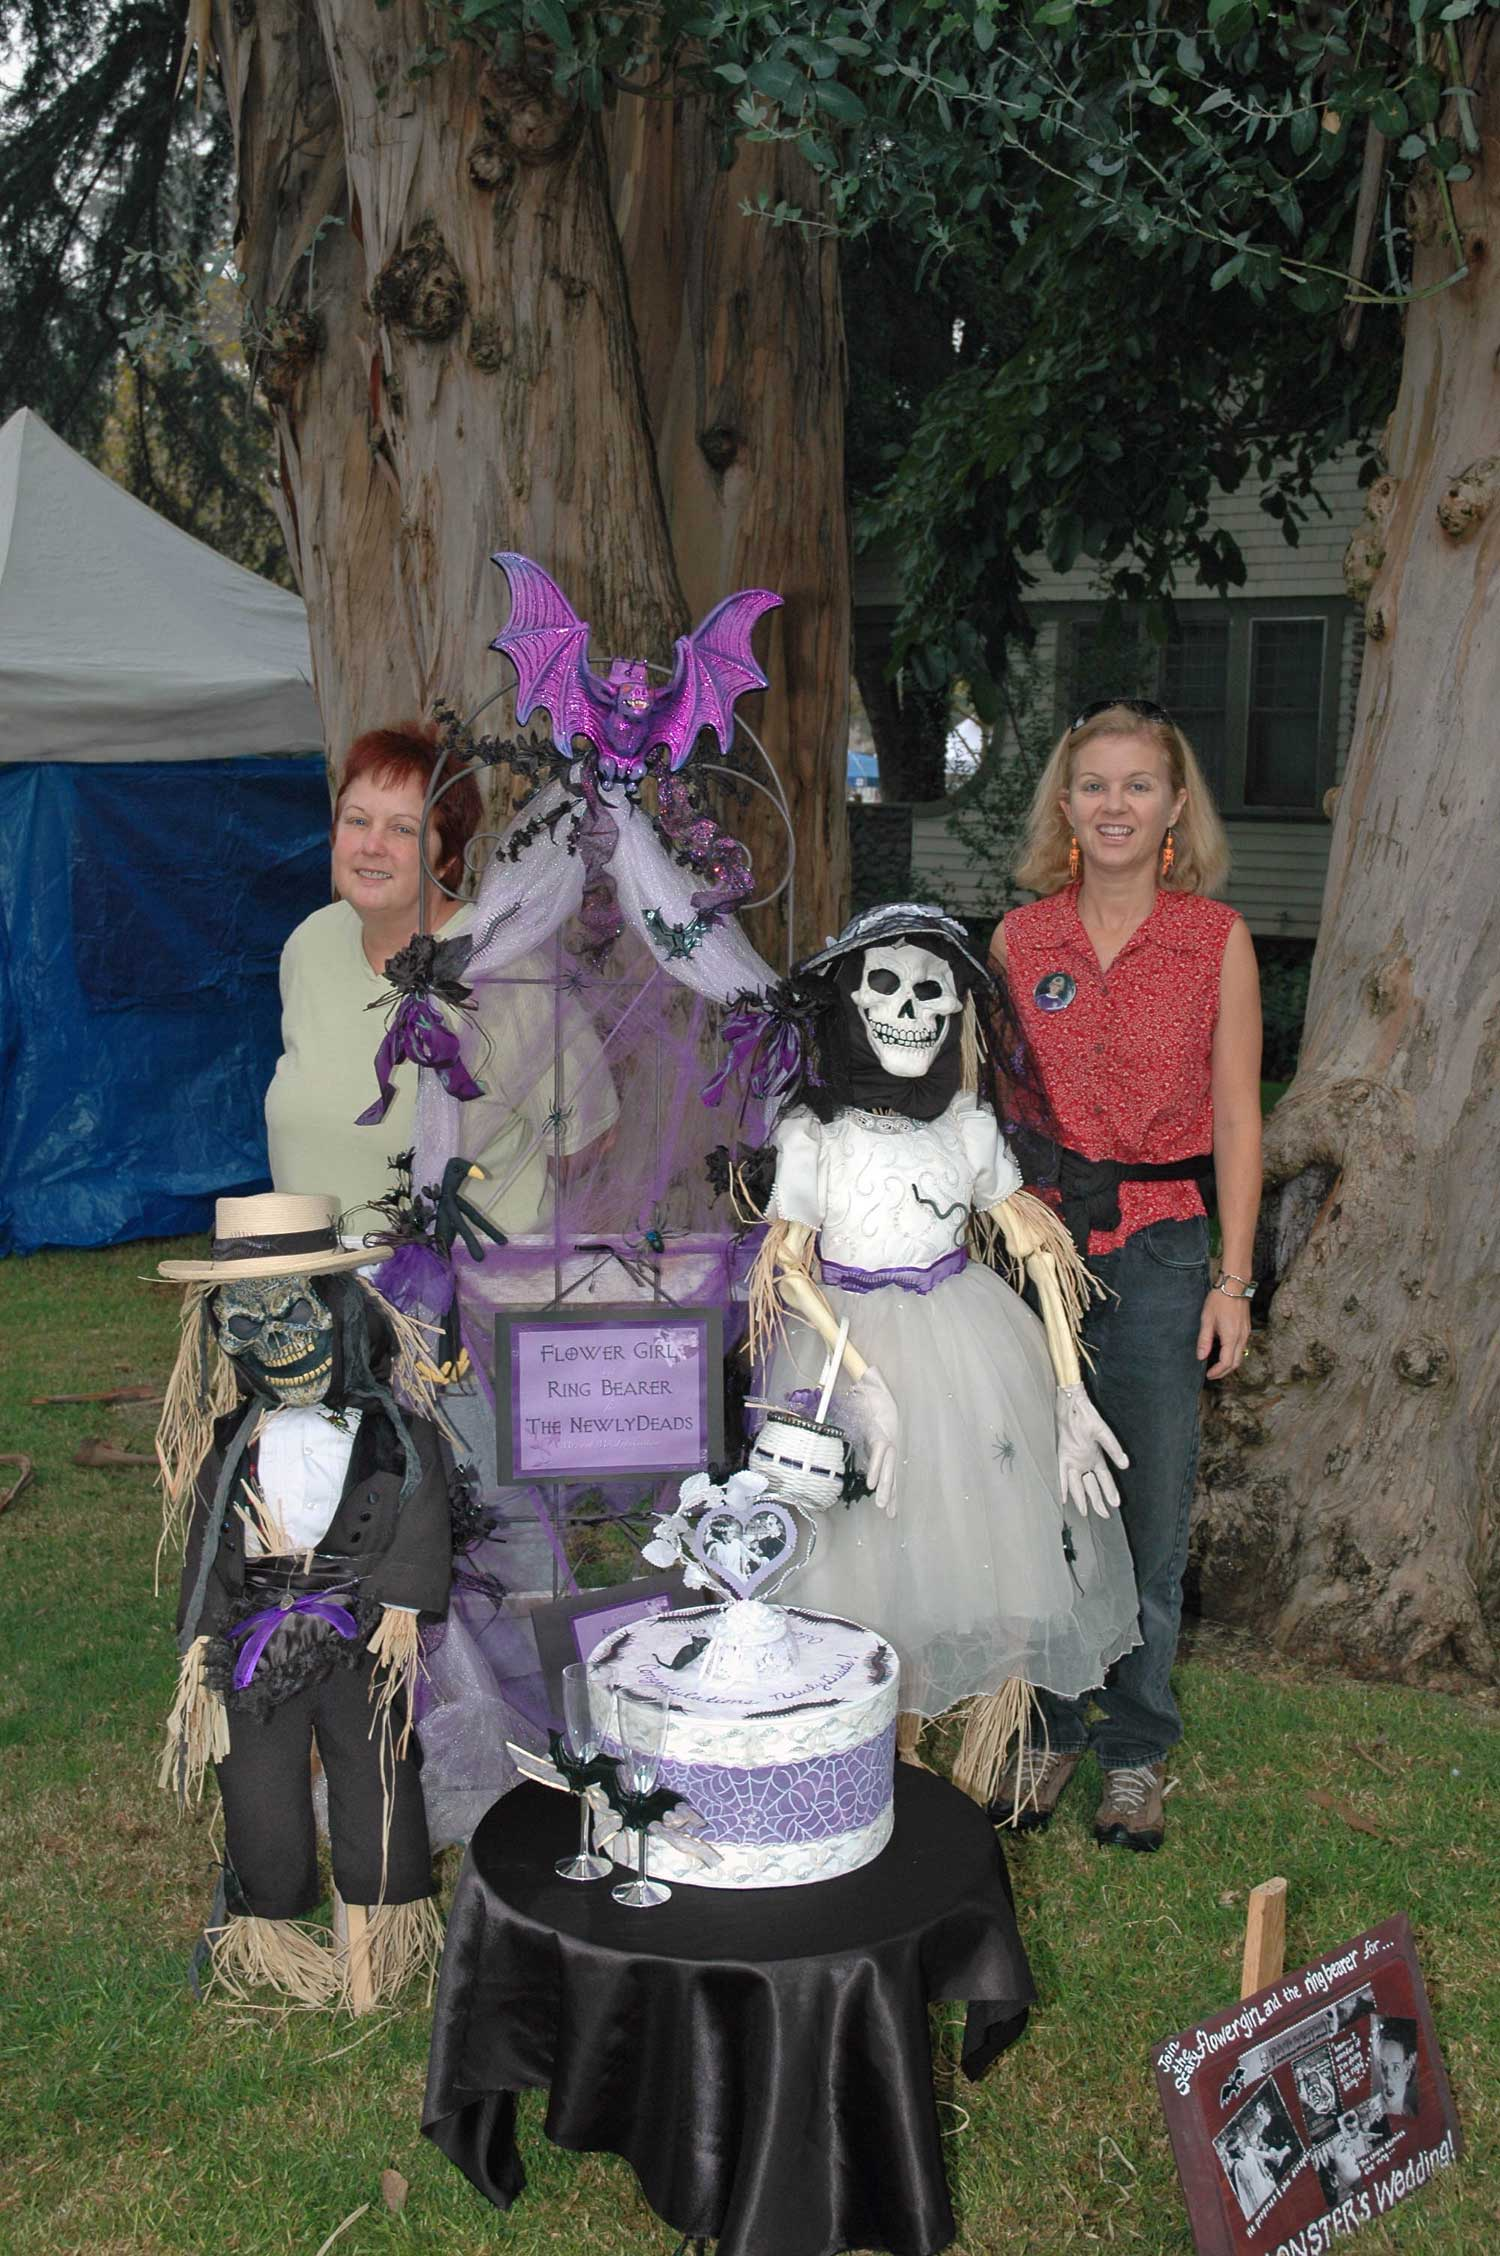 The artists with their winning scarecrow design